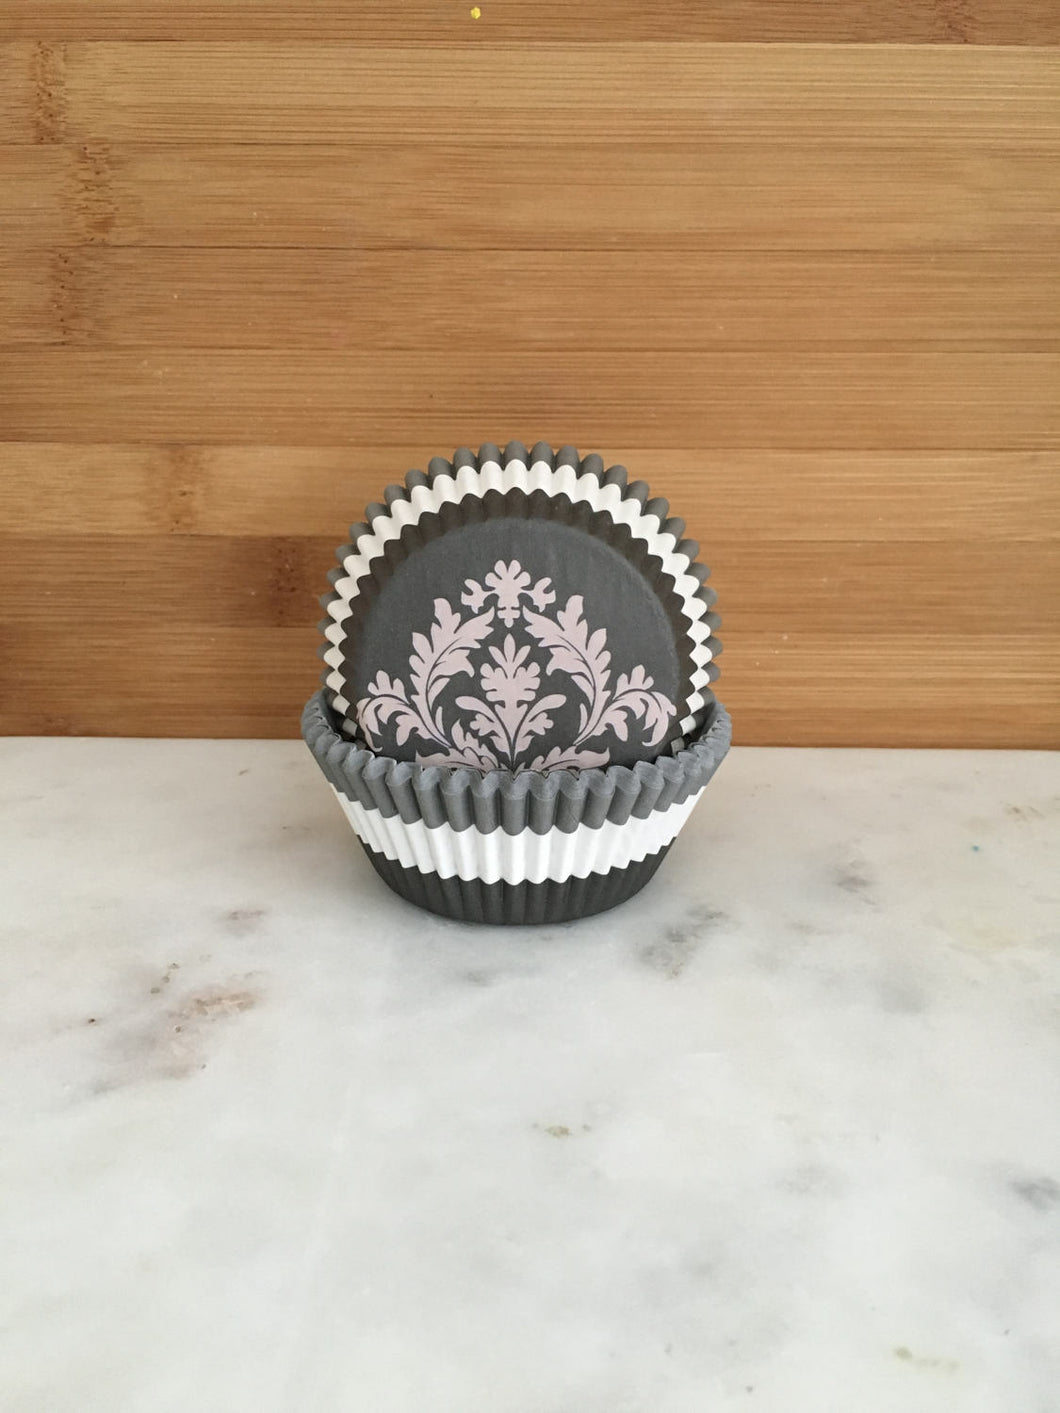 Black, White and Grey Paisley Cupcake Liners, Standard Sized, Baking Cups (50)